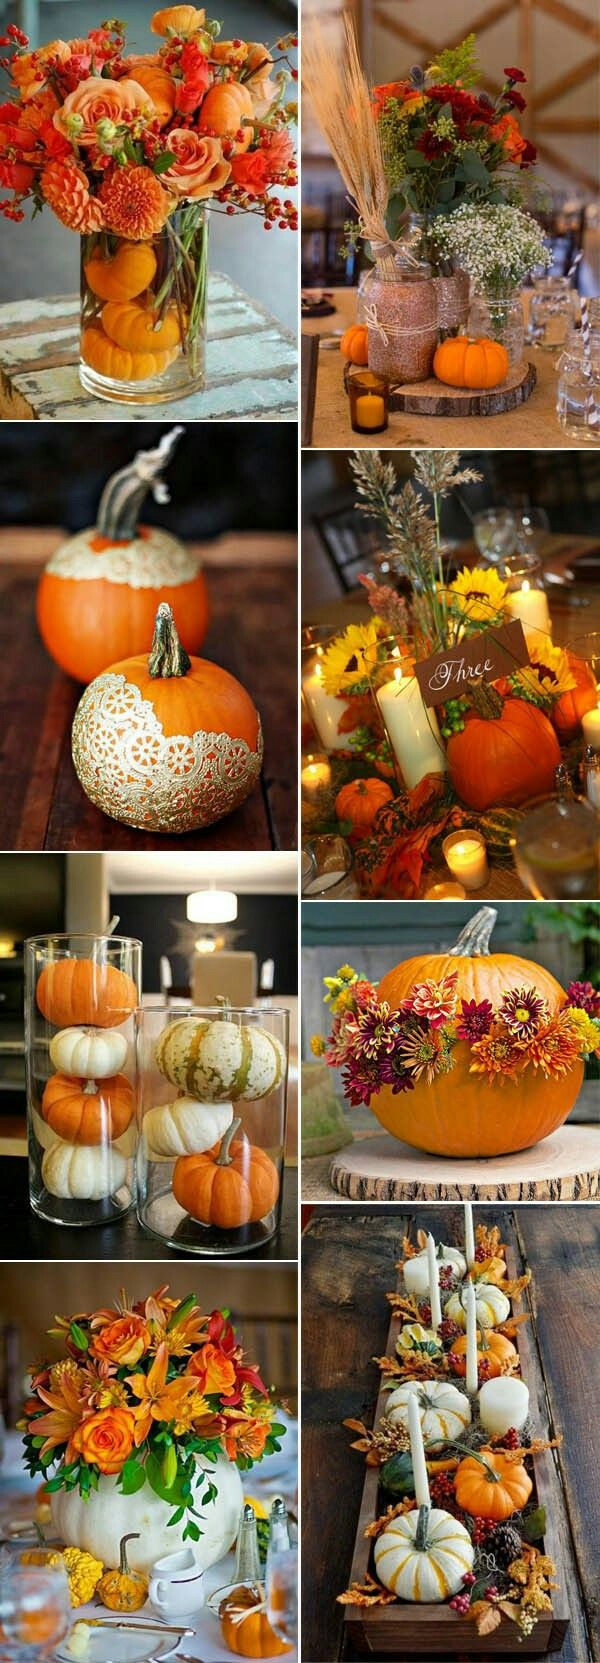 Halloween food table decorations - Fall Decor Table Decor And Centerpieces